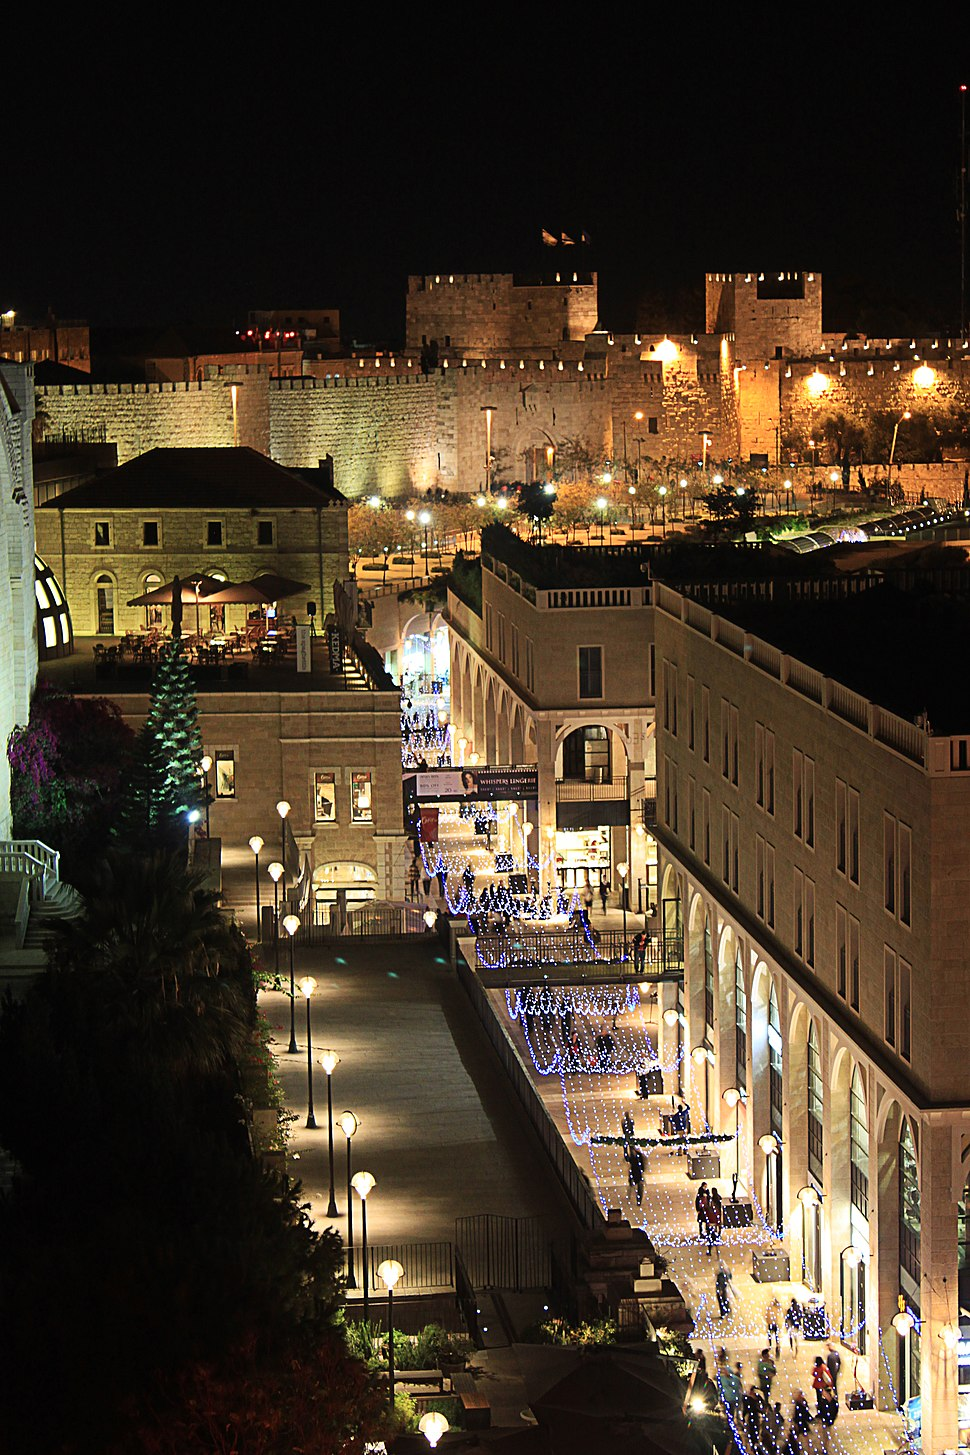 Old city walls and mamilla ave. at night - as seen from %22Rooftop%22 restauran - Jerusalem, Israel